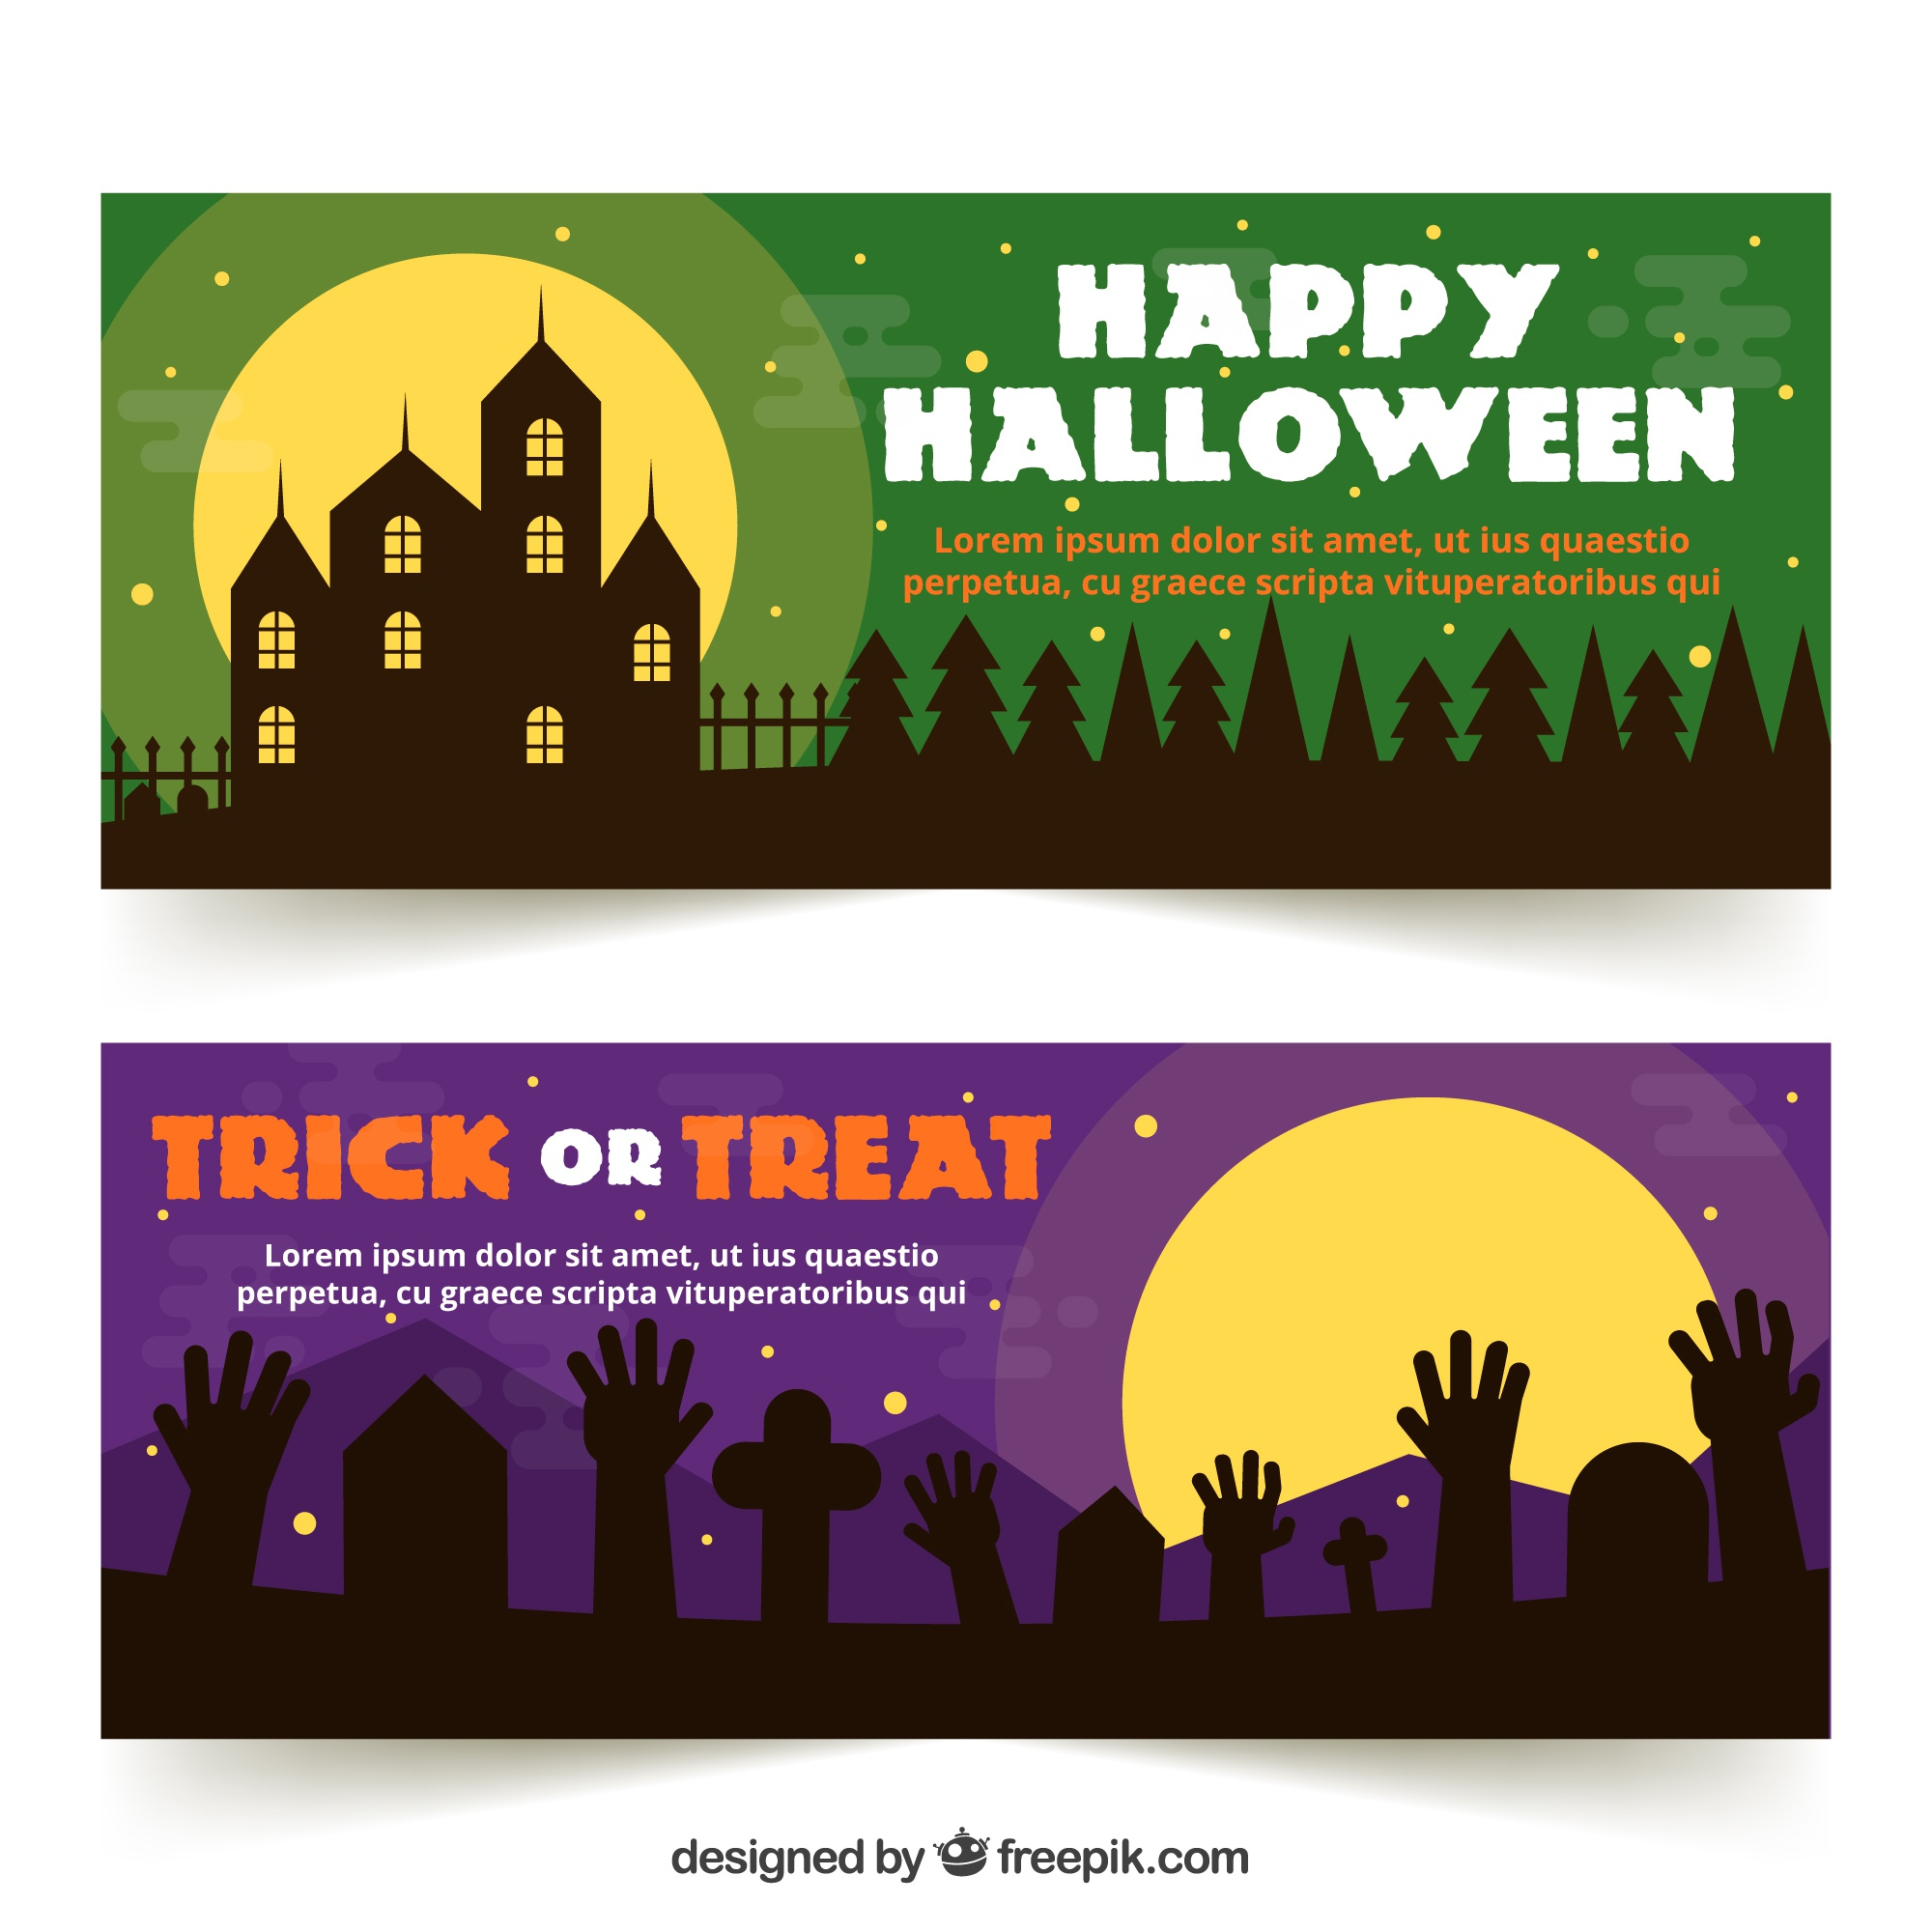 Happy halloween banners with silhouettes